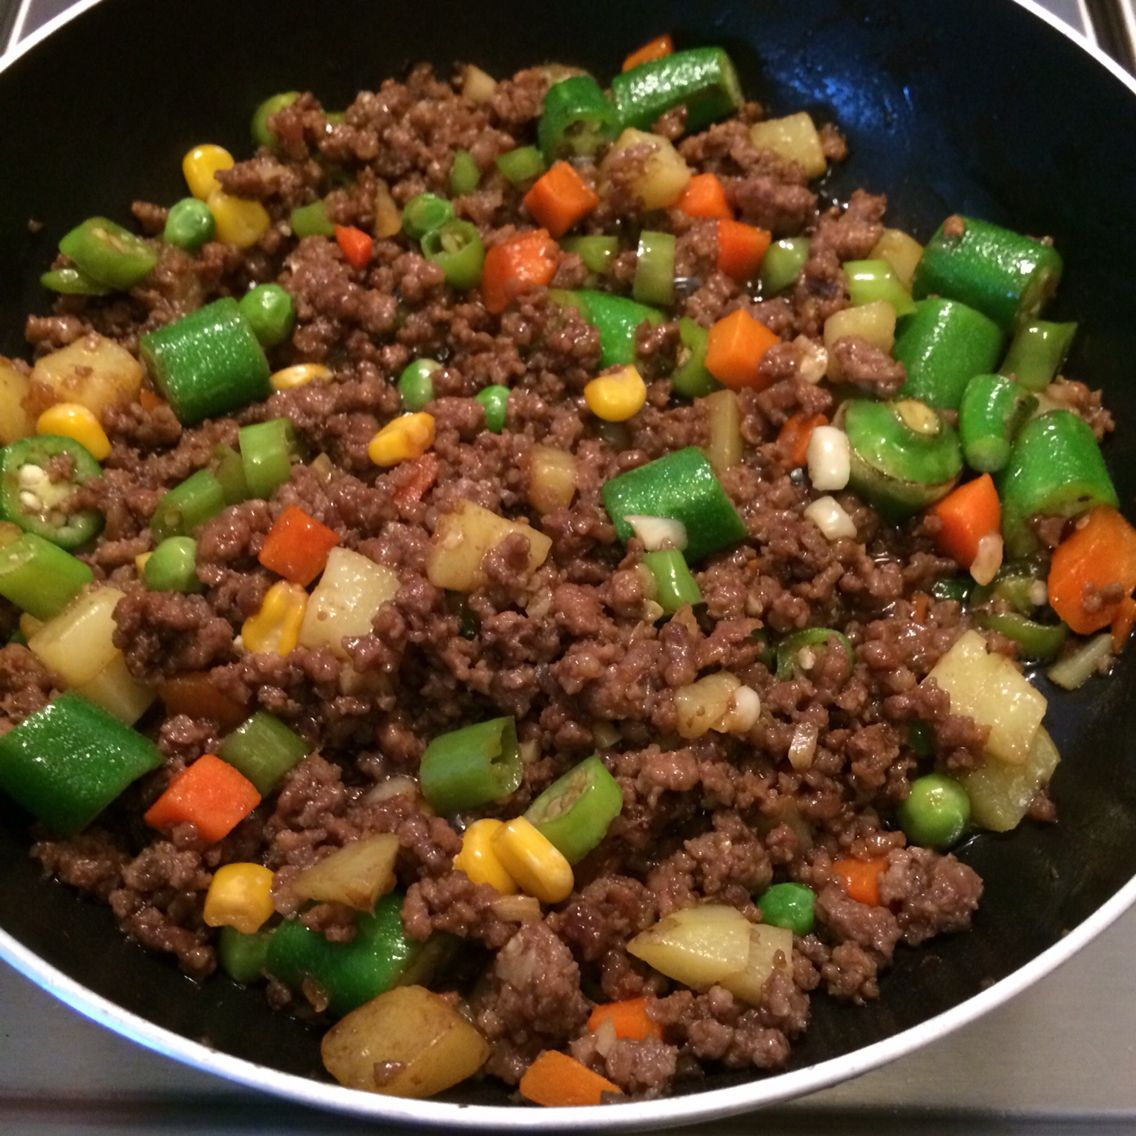 Chinese-style ground beef on Christmas Eve.